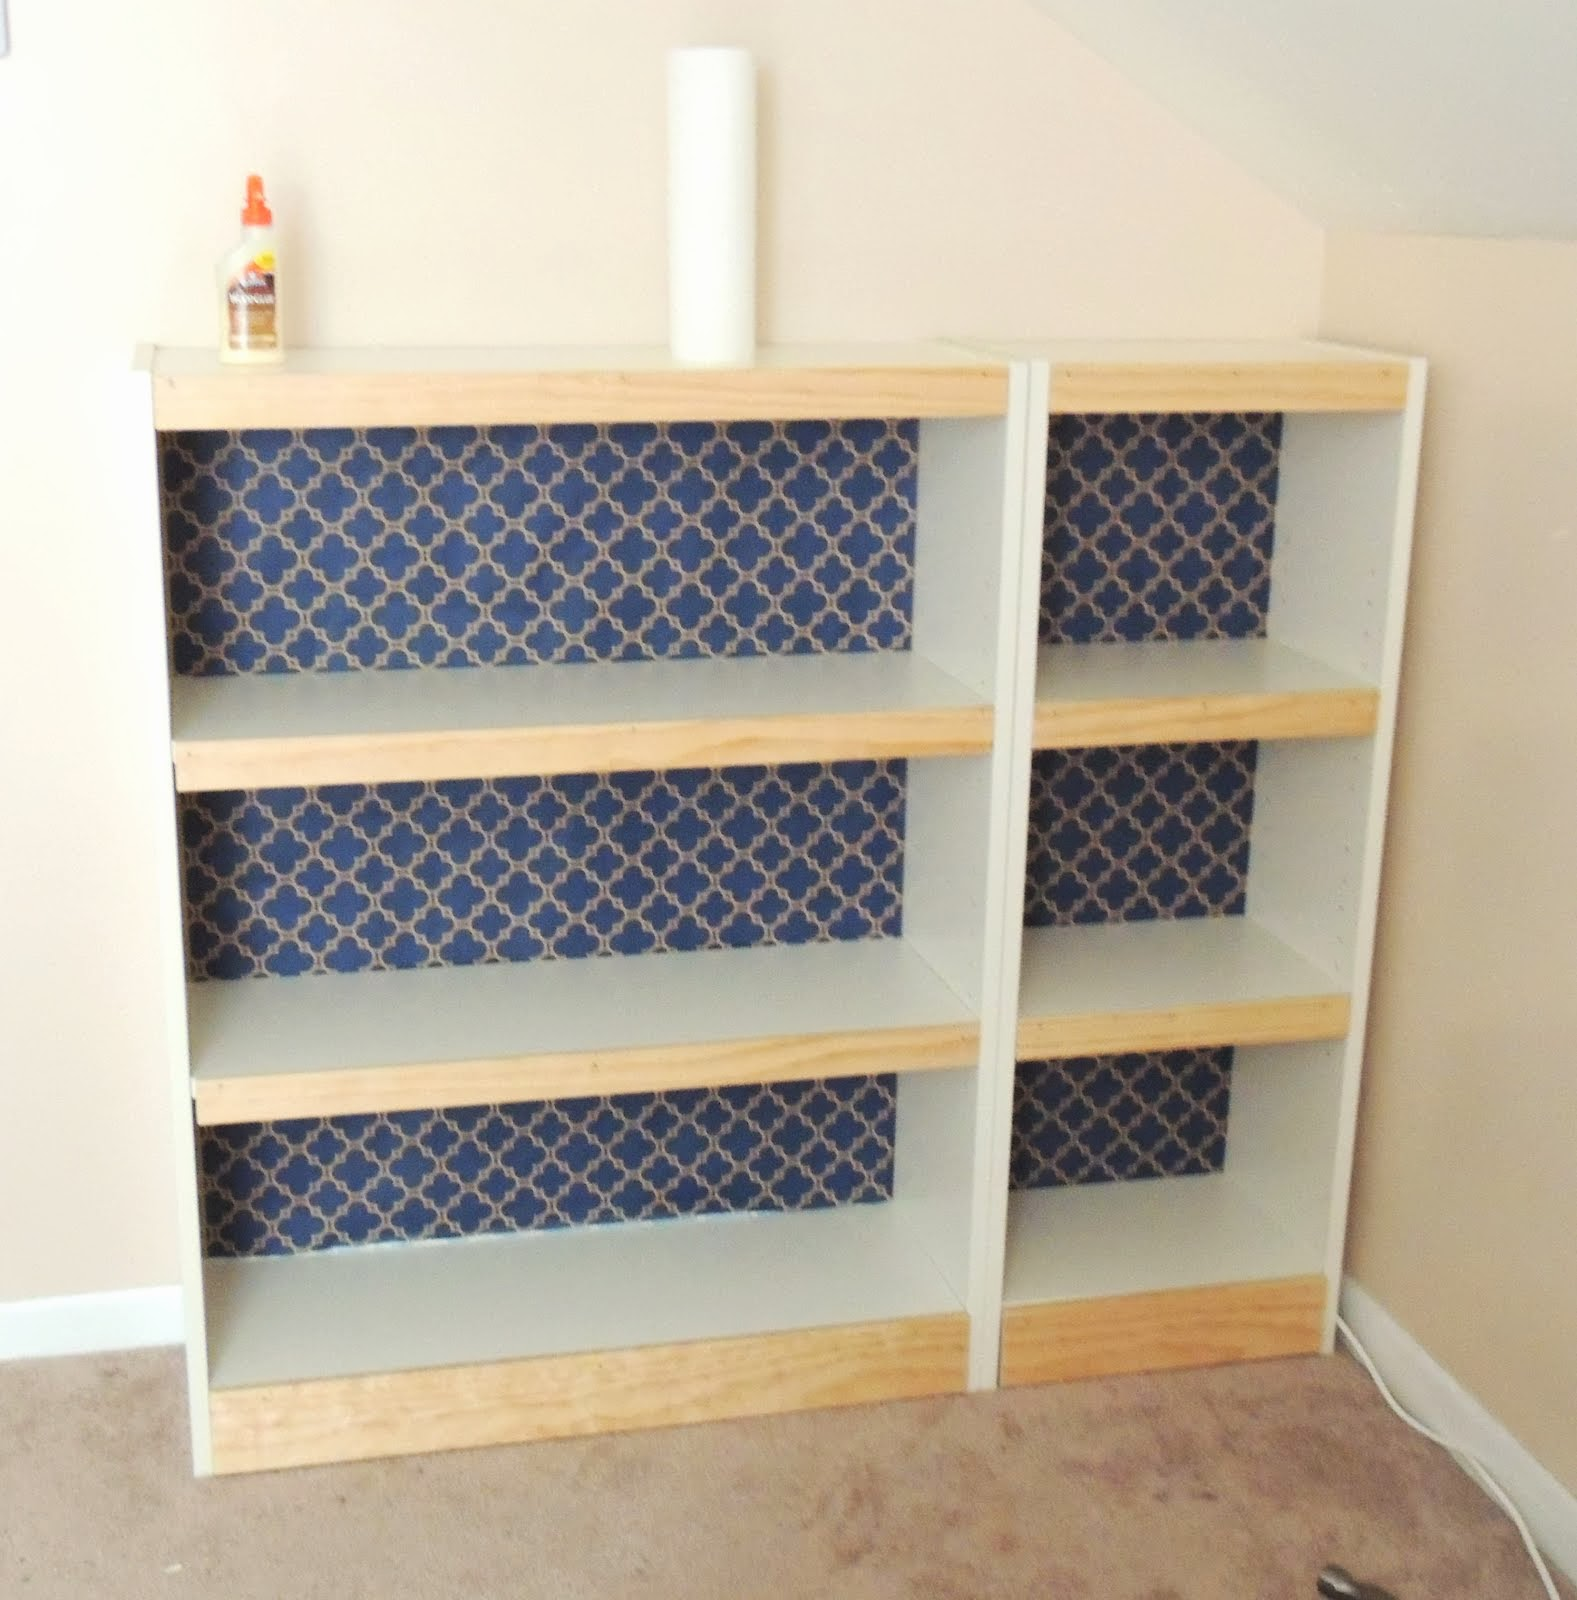 Billy bookcase face lift ikea hackers ikea hackers Ikea hacking